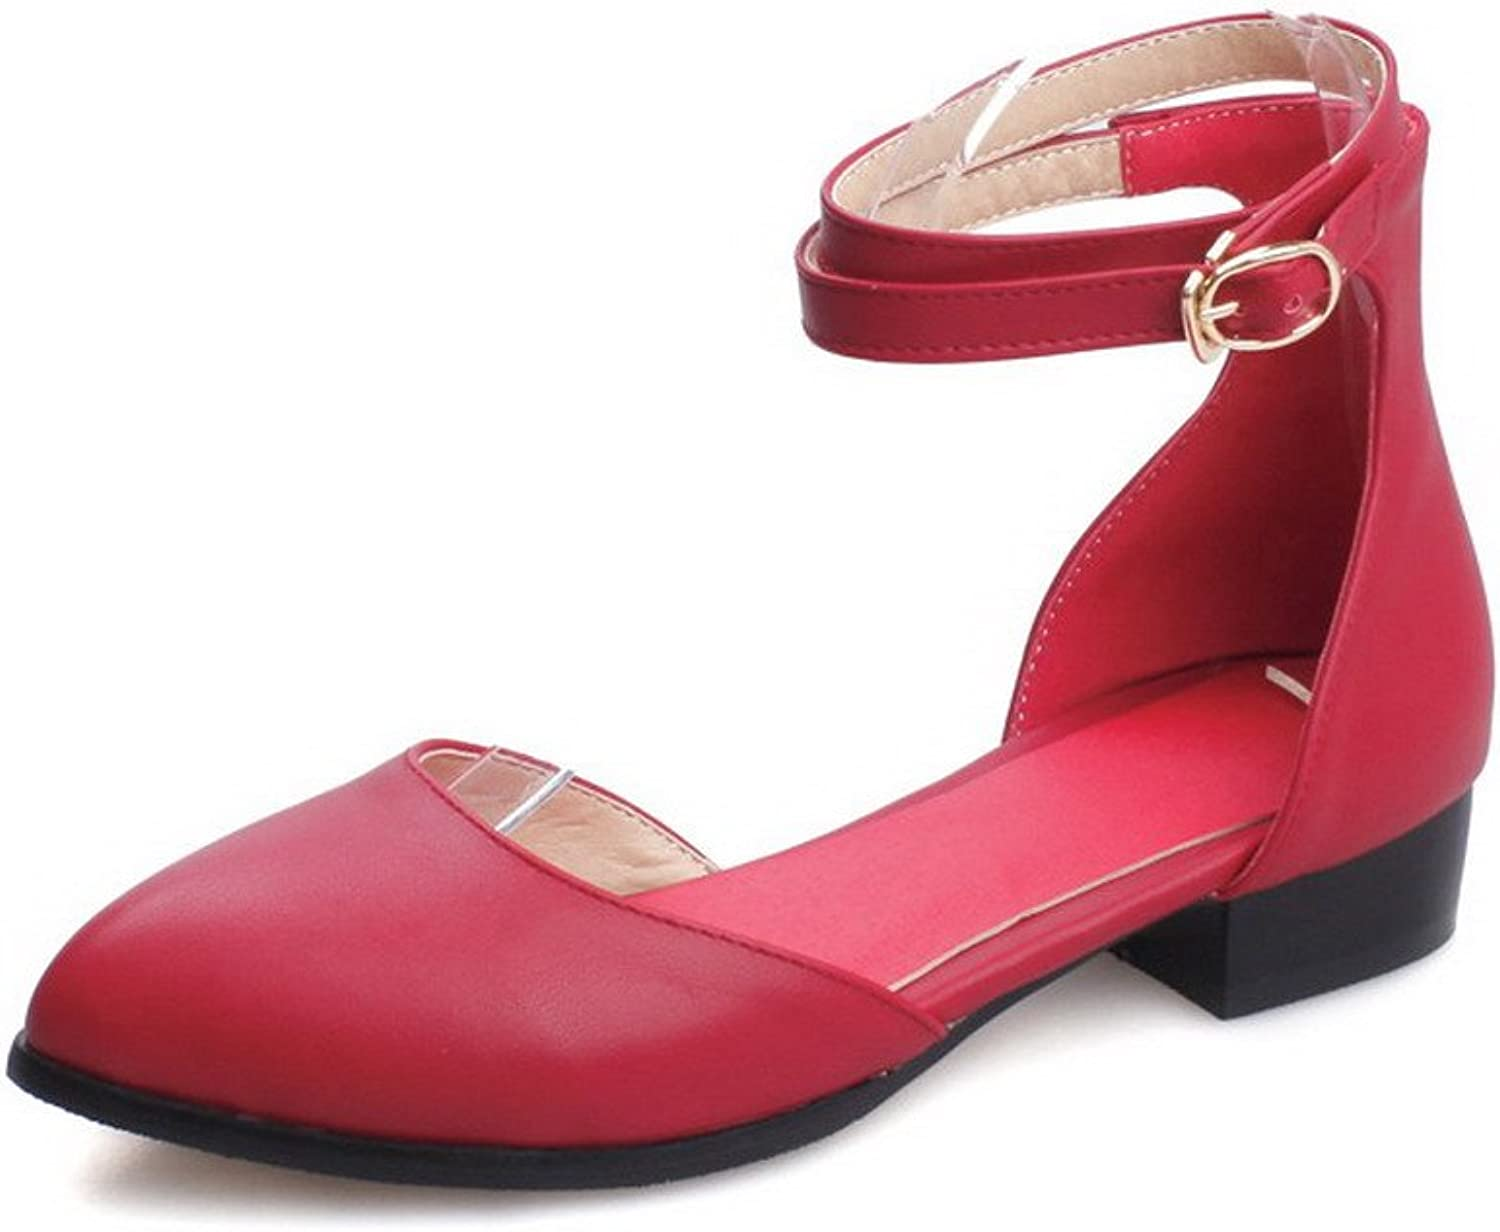 AmoonyFashion Women's Low Heels Solid Buckle Pointed Closed Toe Pumps shoes